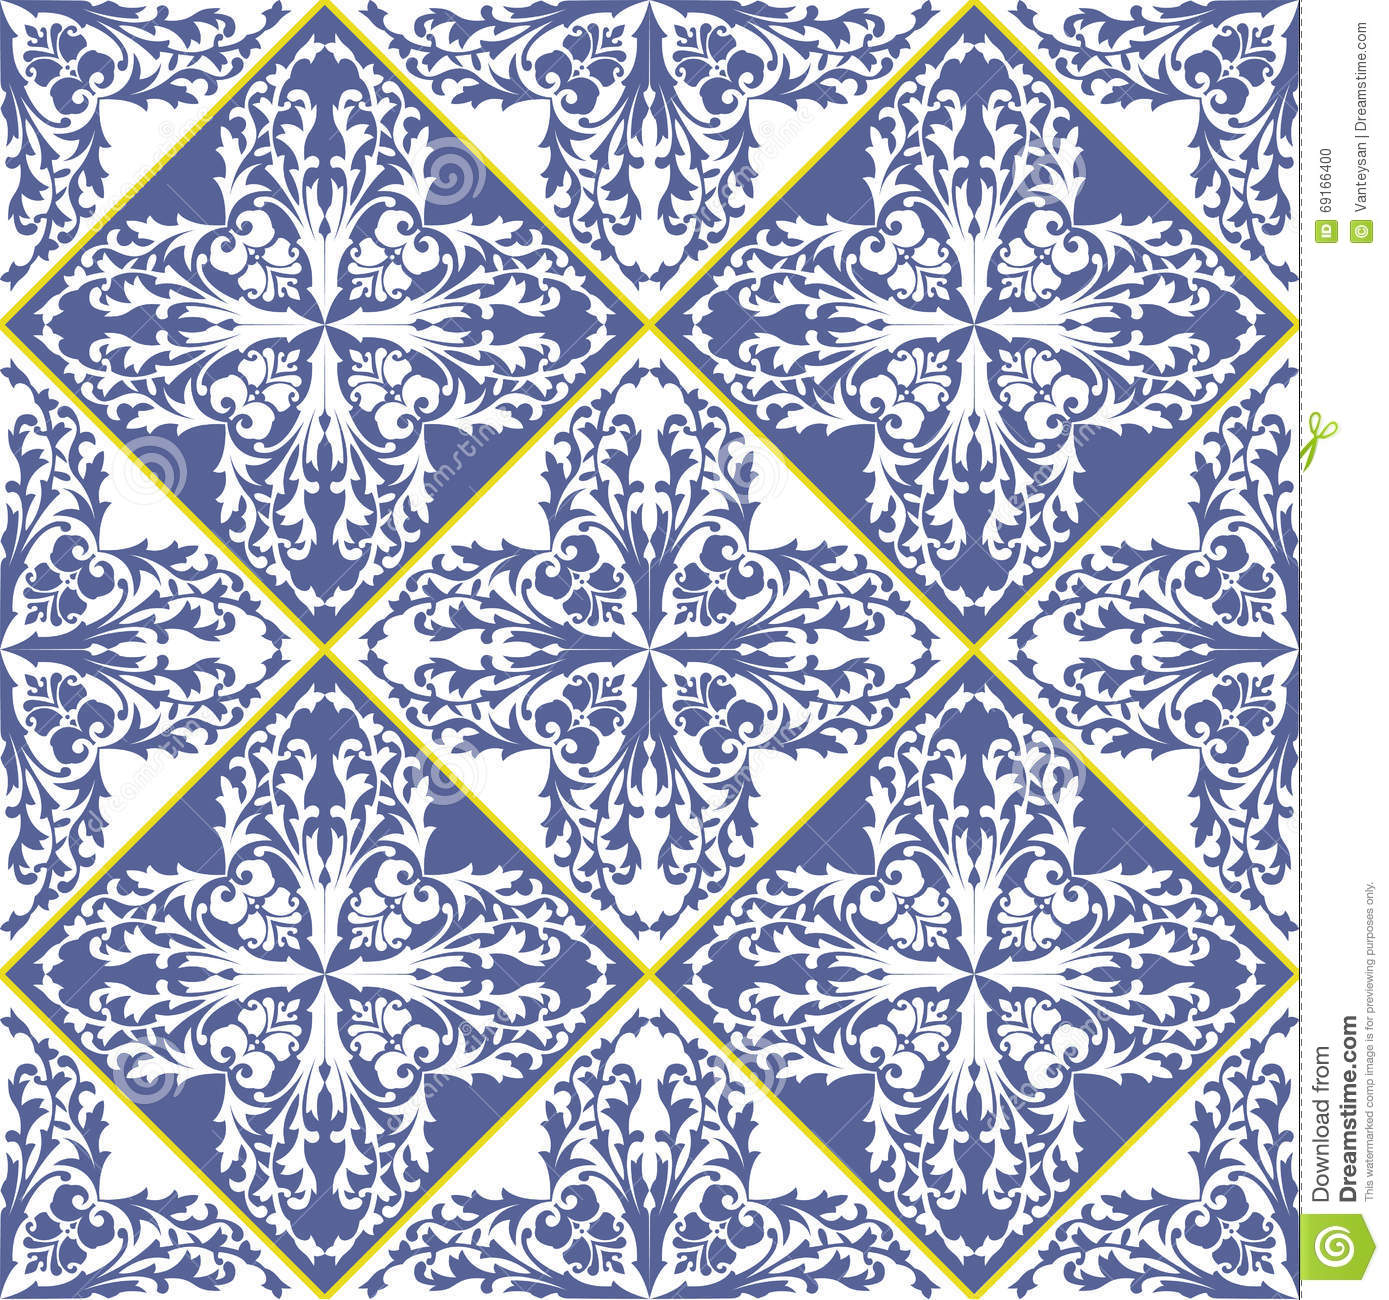 mediterranean pattern with olives  olive oil  basil maryland blue crab clipart blue crab clipart free